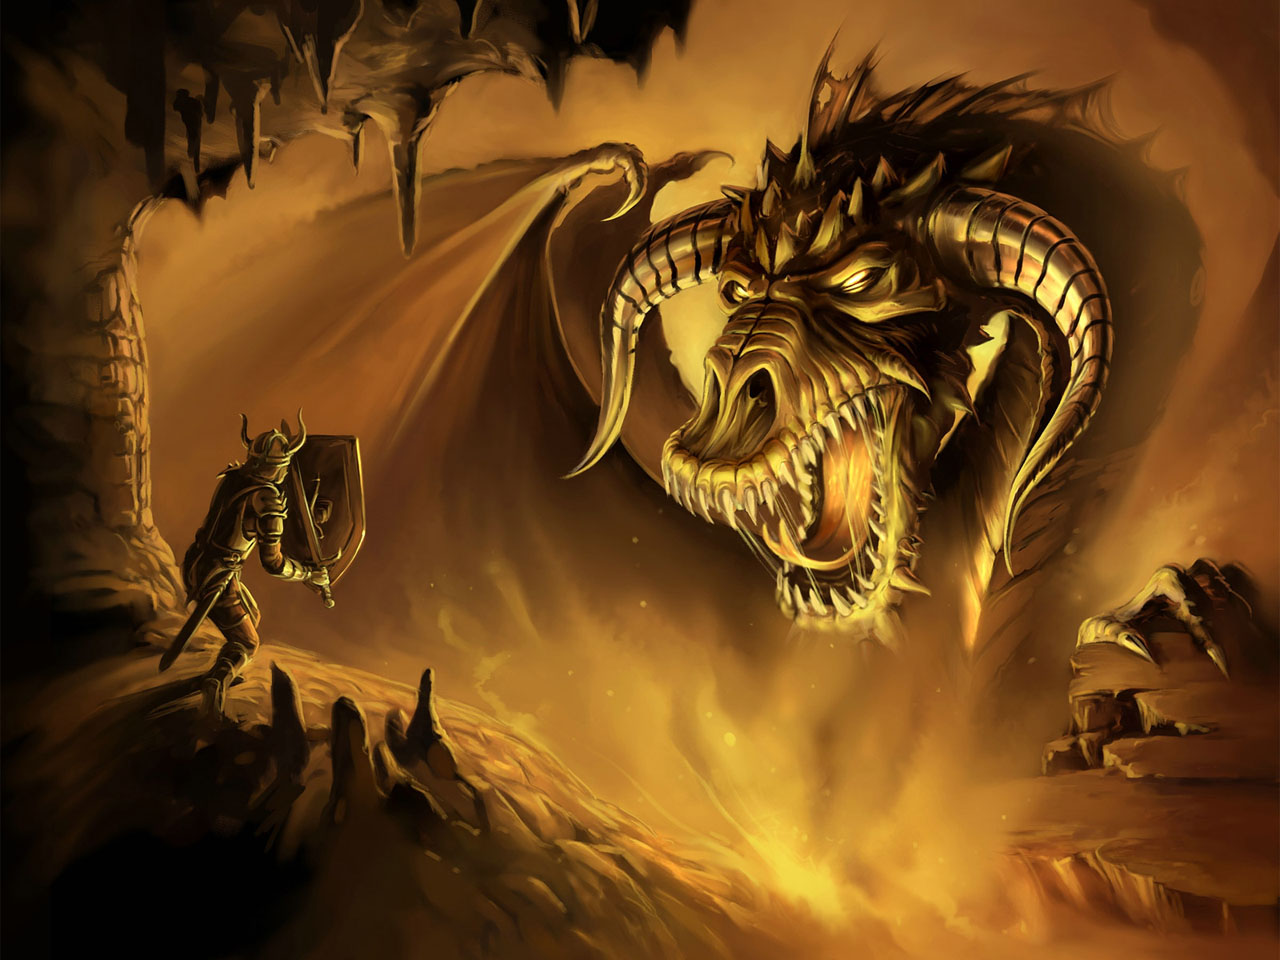 Dragon Slayer Wallpaper HD Backgrounds Images Pictures 1280x960